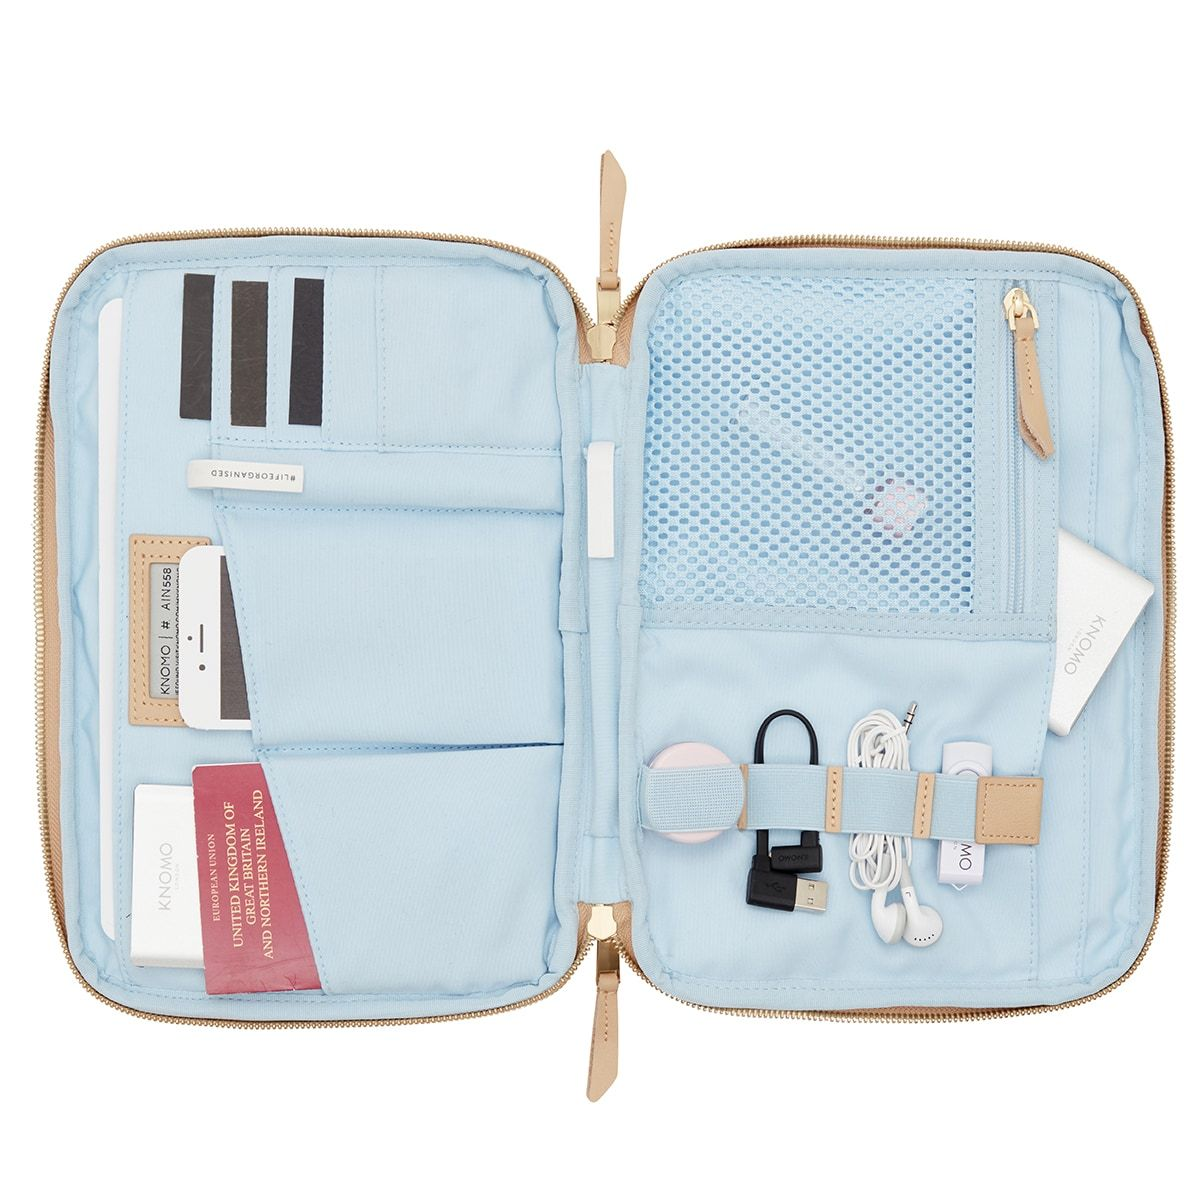 "Knomad X-Body Organiser Tech Organiser For Everyday - 10.5"" -  10.5"" 